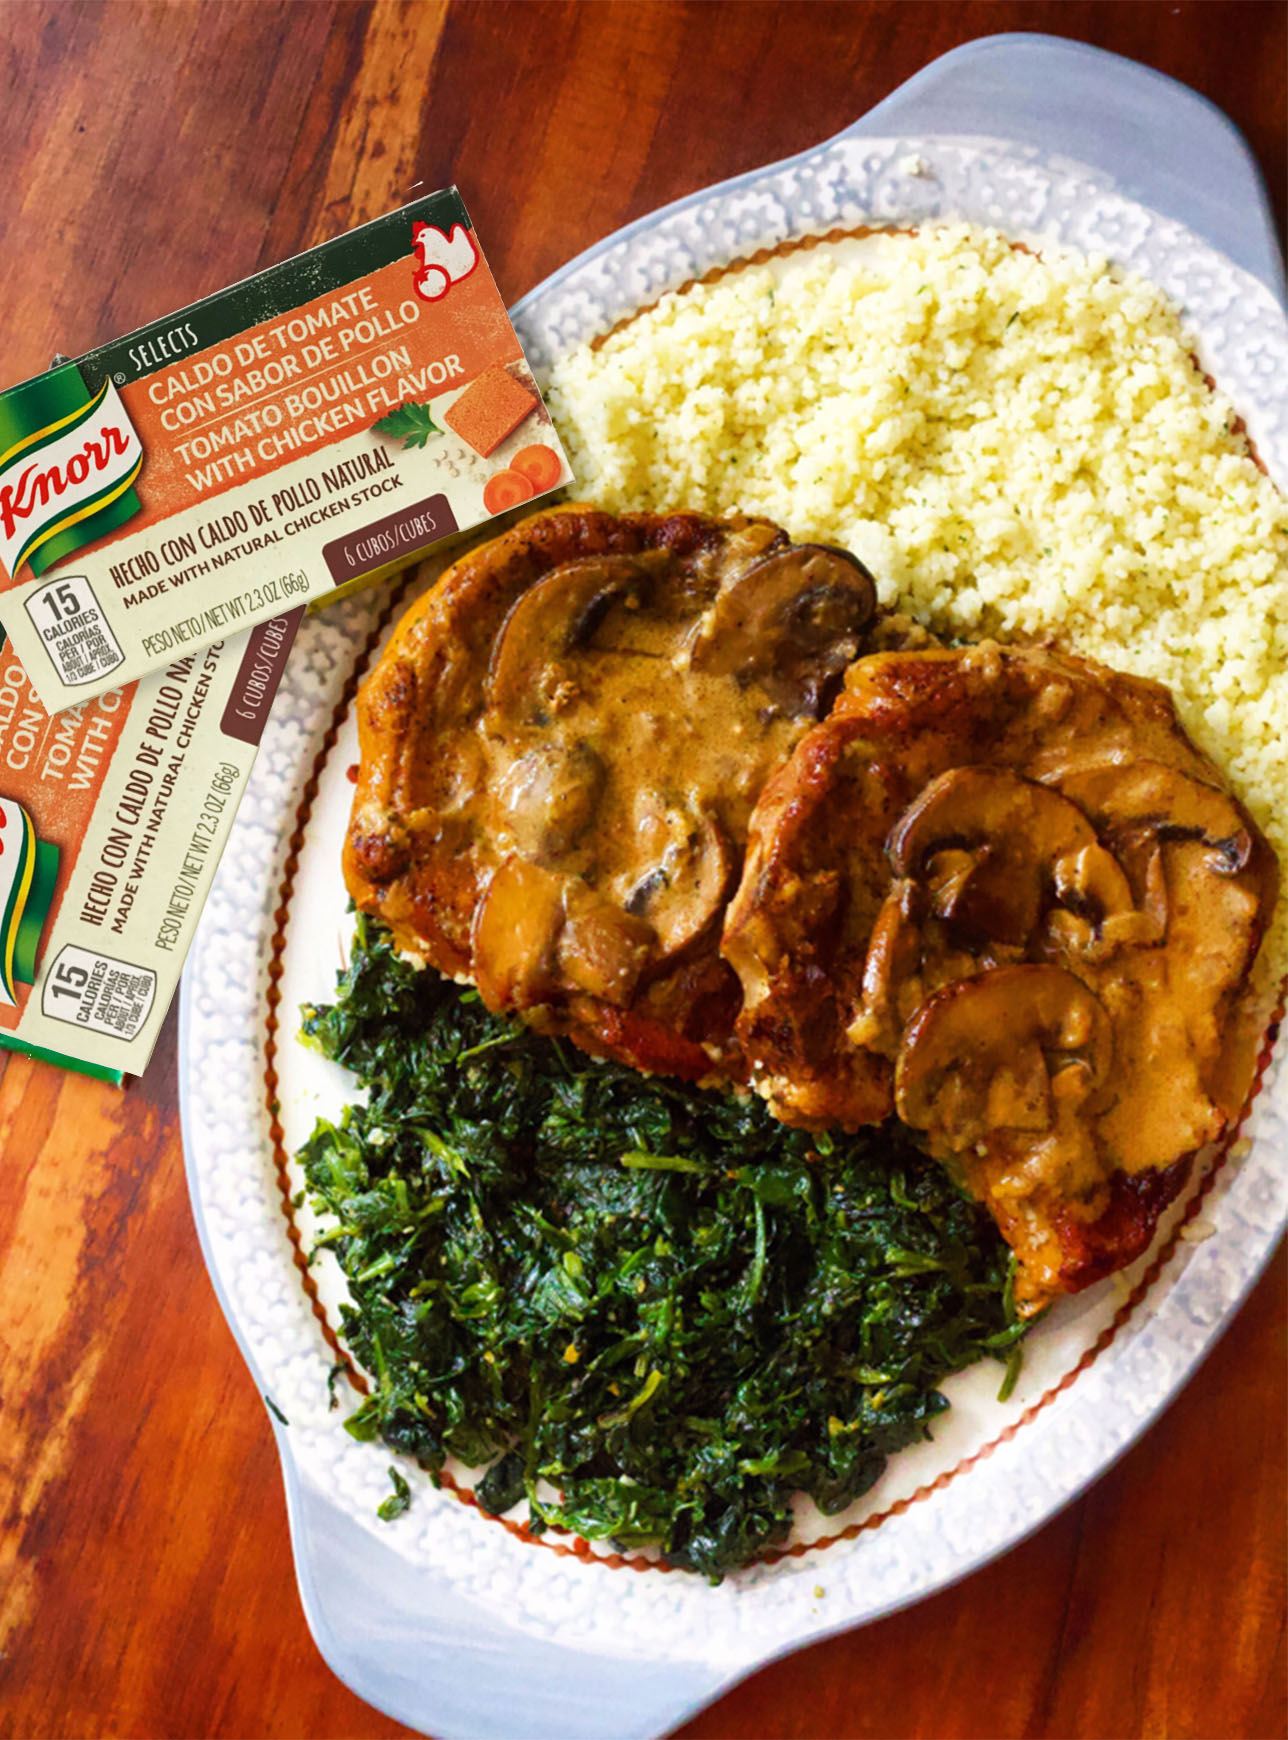 Delicious & juicy Cajun pork chops smothered in onions and mushrooms, in a spicy Cajun tomato cream sauce. Perfect dinner recipe!